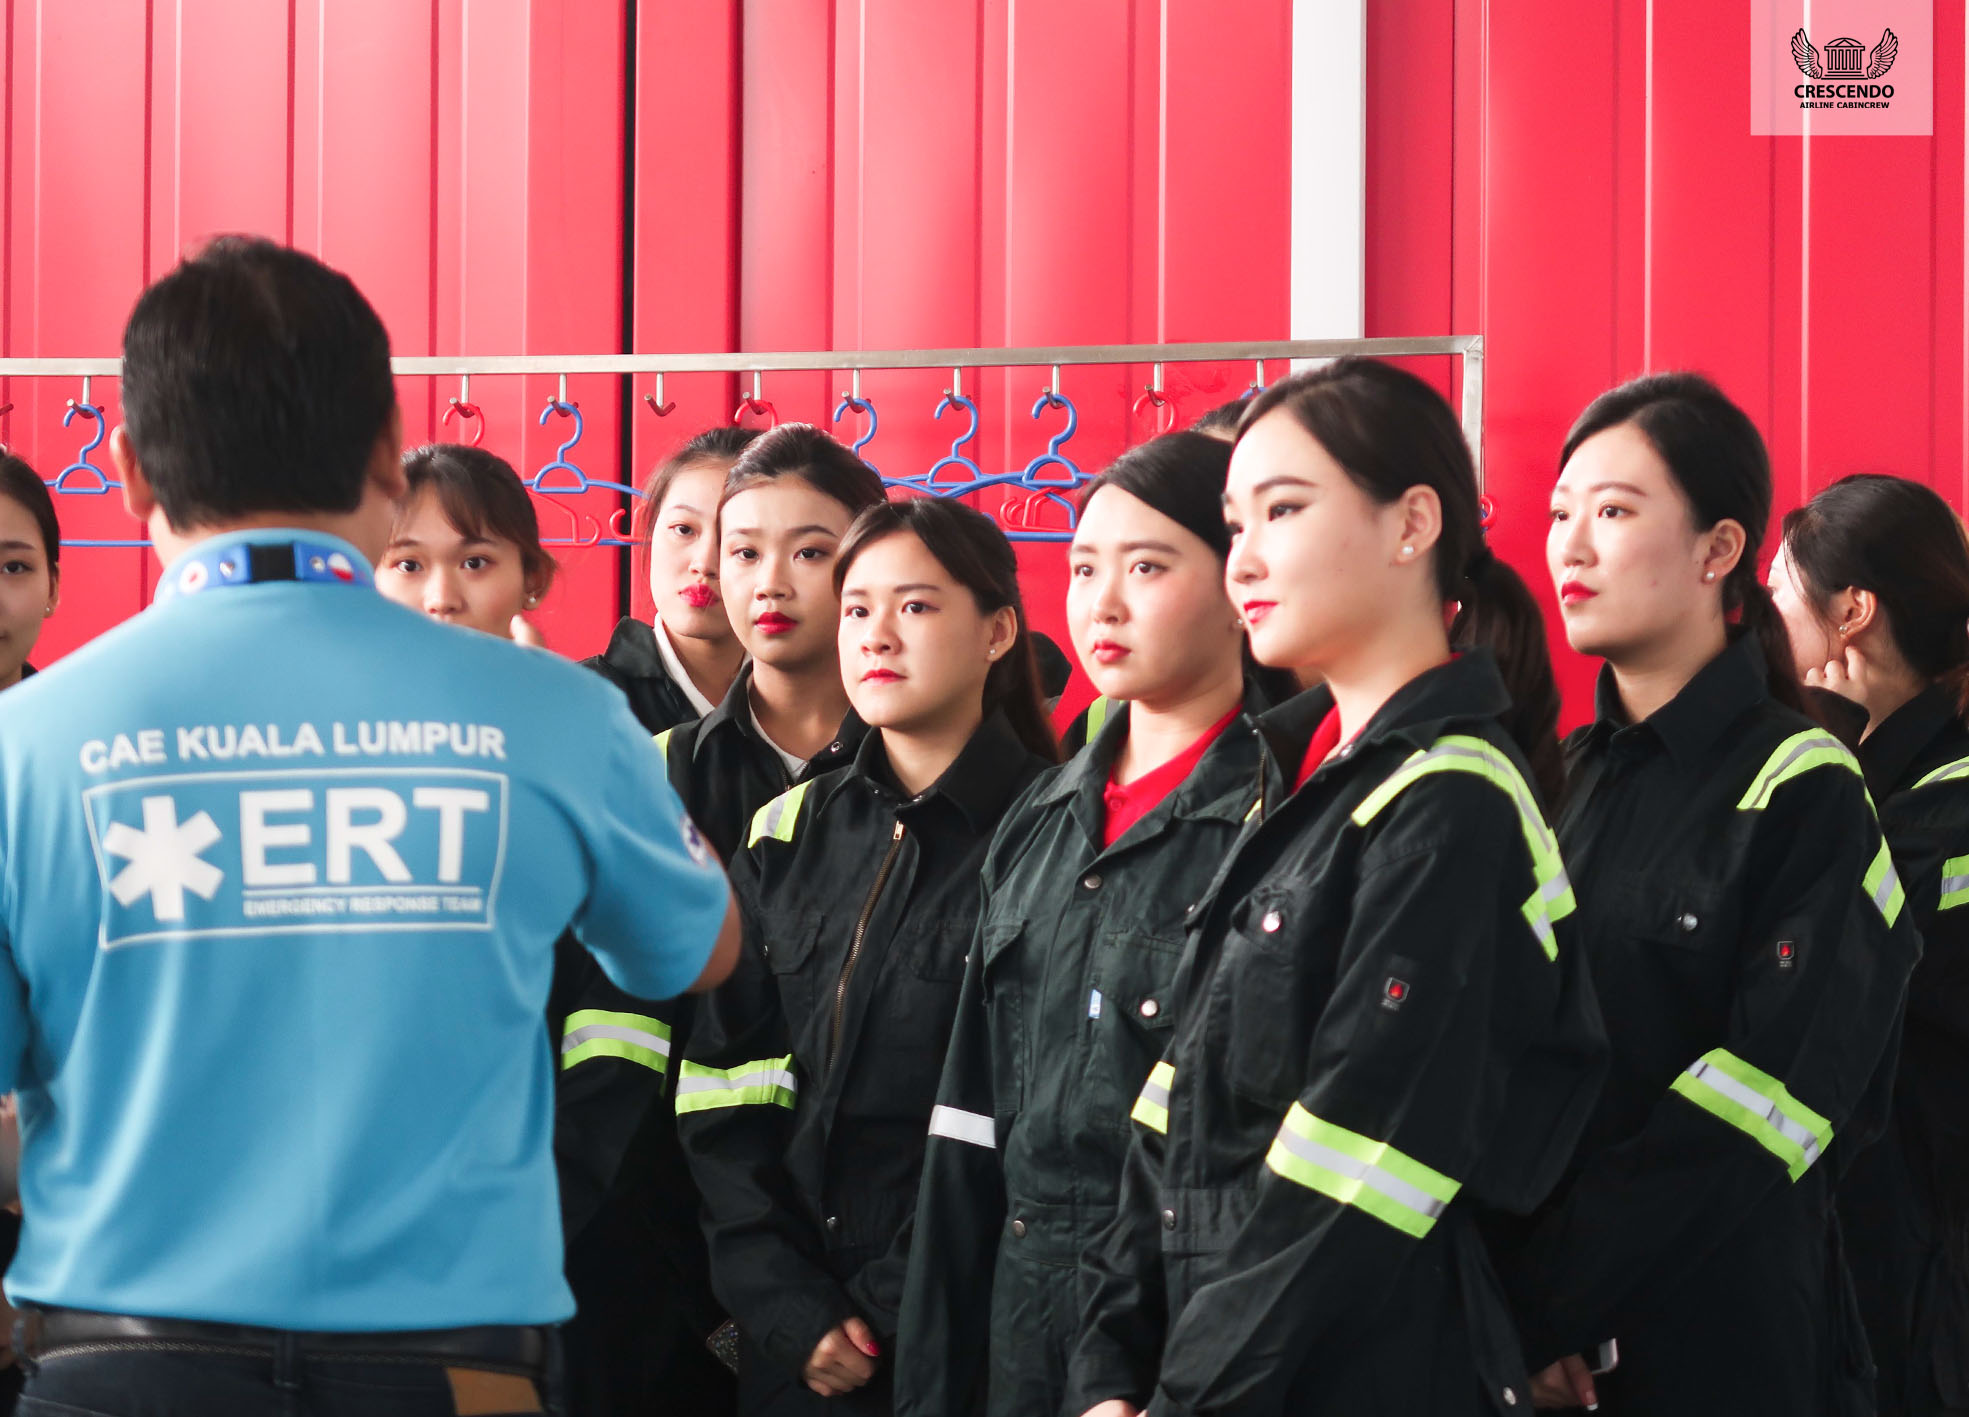 Fire Fighting Training (9)_1 (watermark)